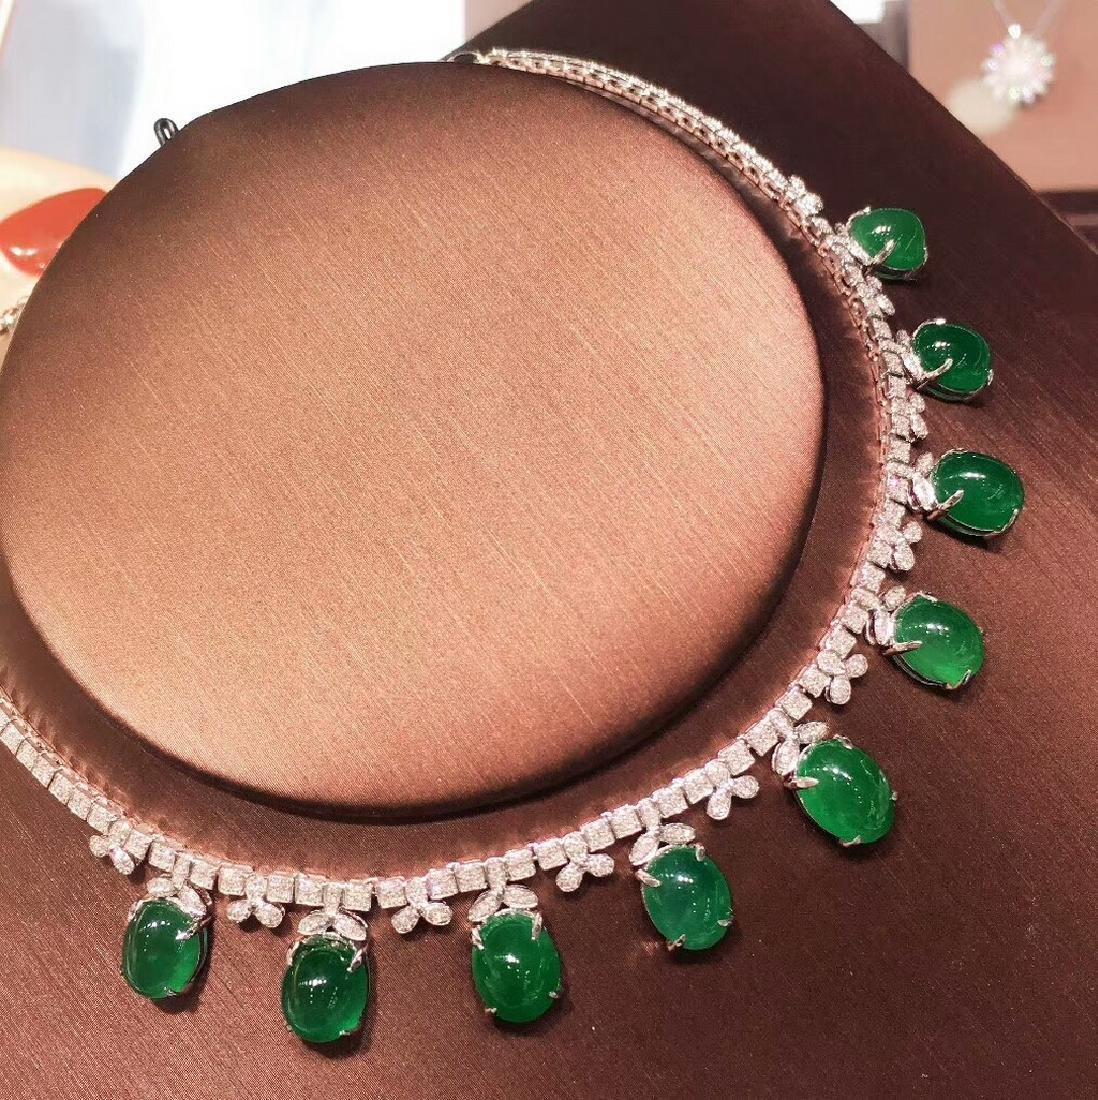 29.5ct Emerald Necklace in 18kt White Gold - 2